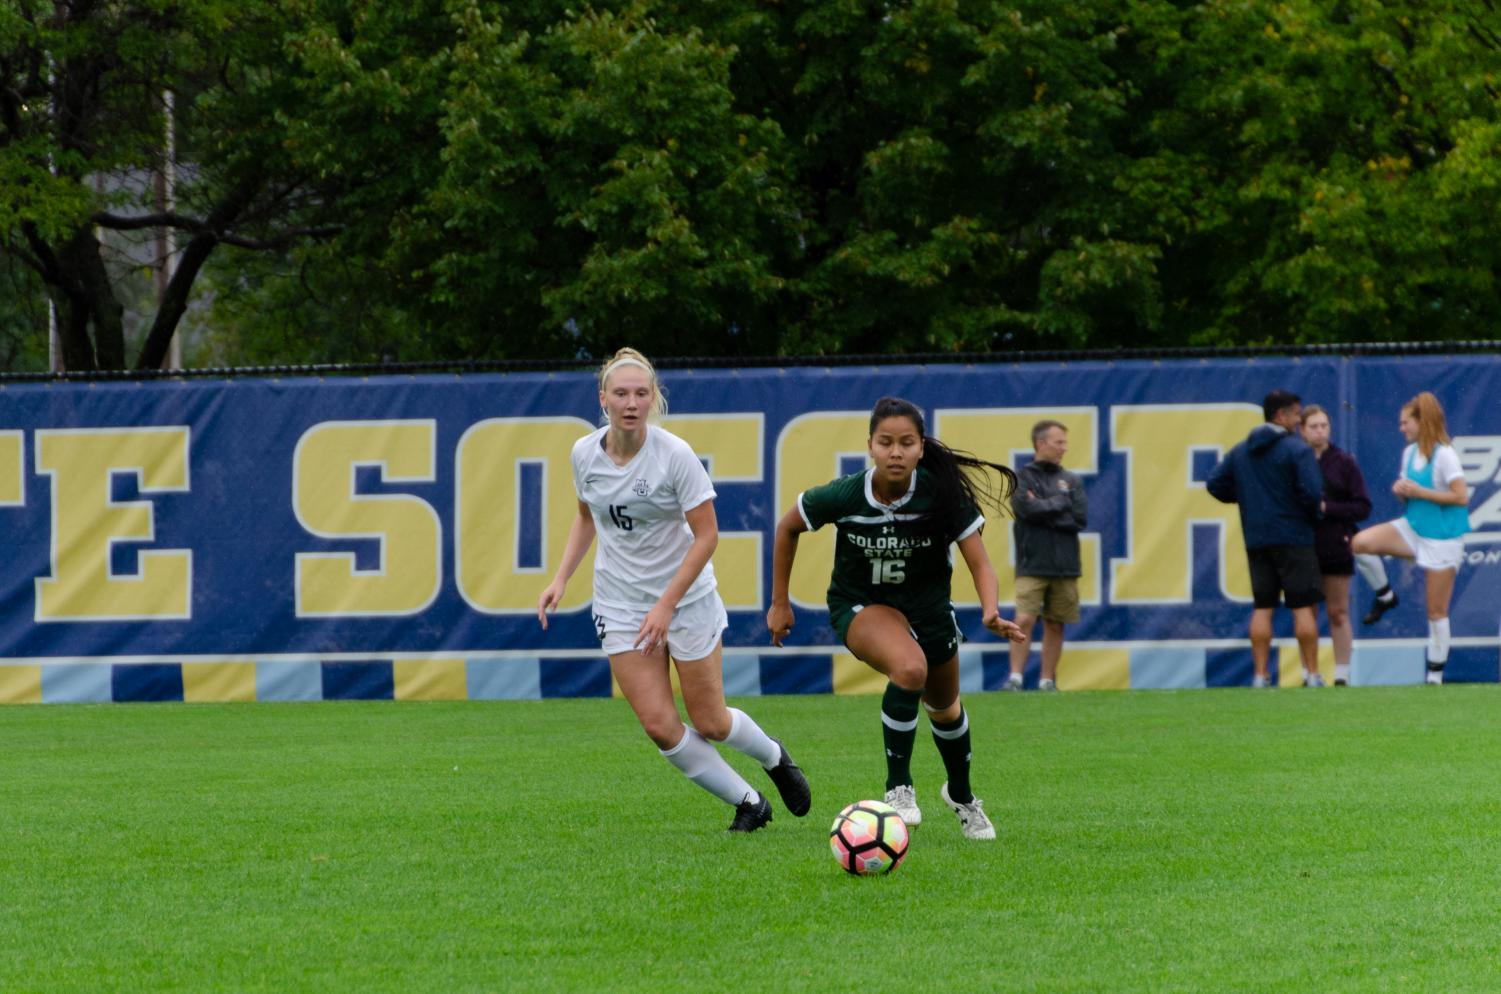 Alyssa Bombacino (left) pursues the ball in Marquette's 2-1 win over Colorado State at Valley Fields on Sept. 22.